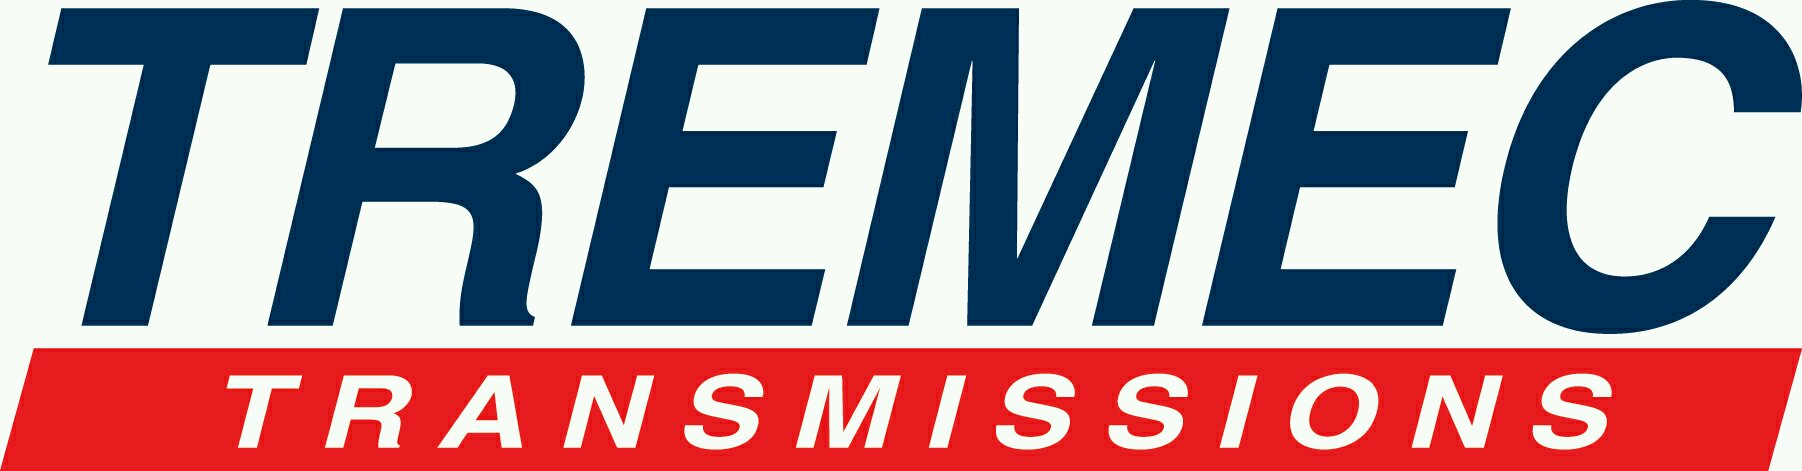 did you know that tremec is actually an acronym for transmisiones y